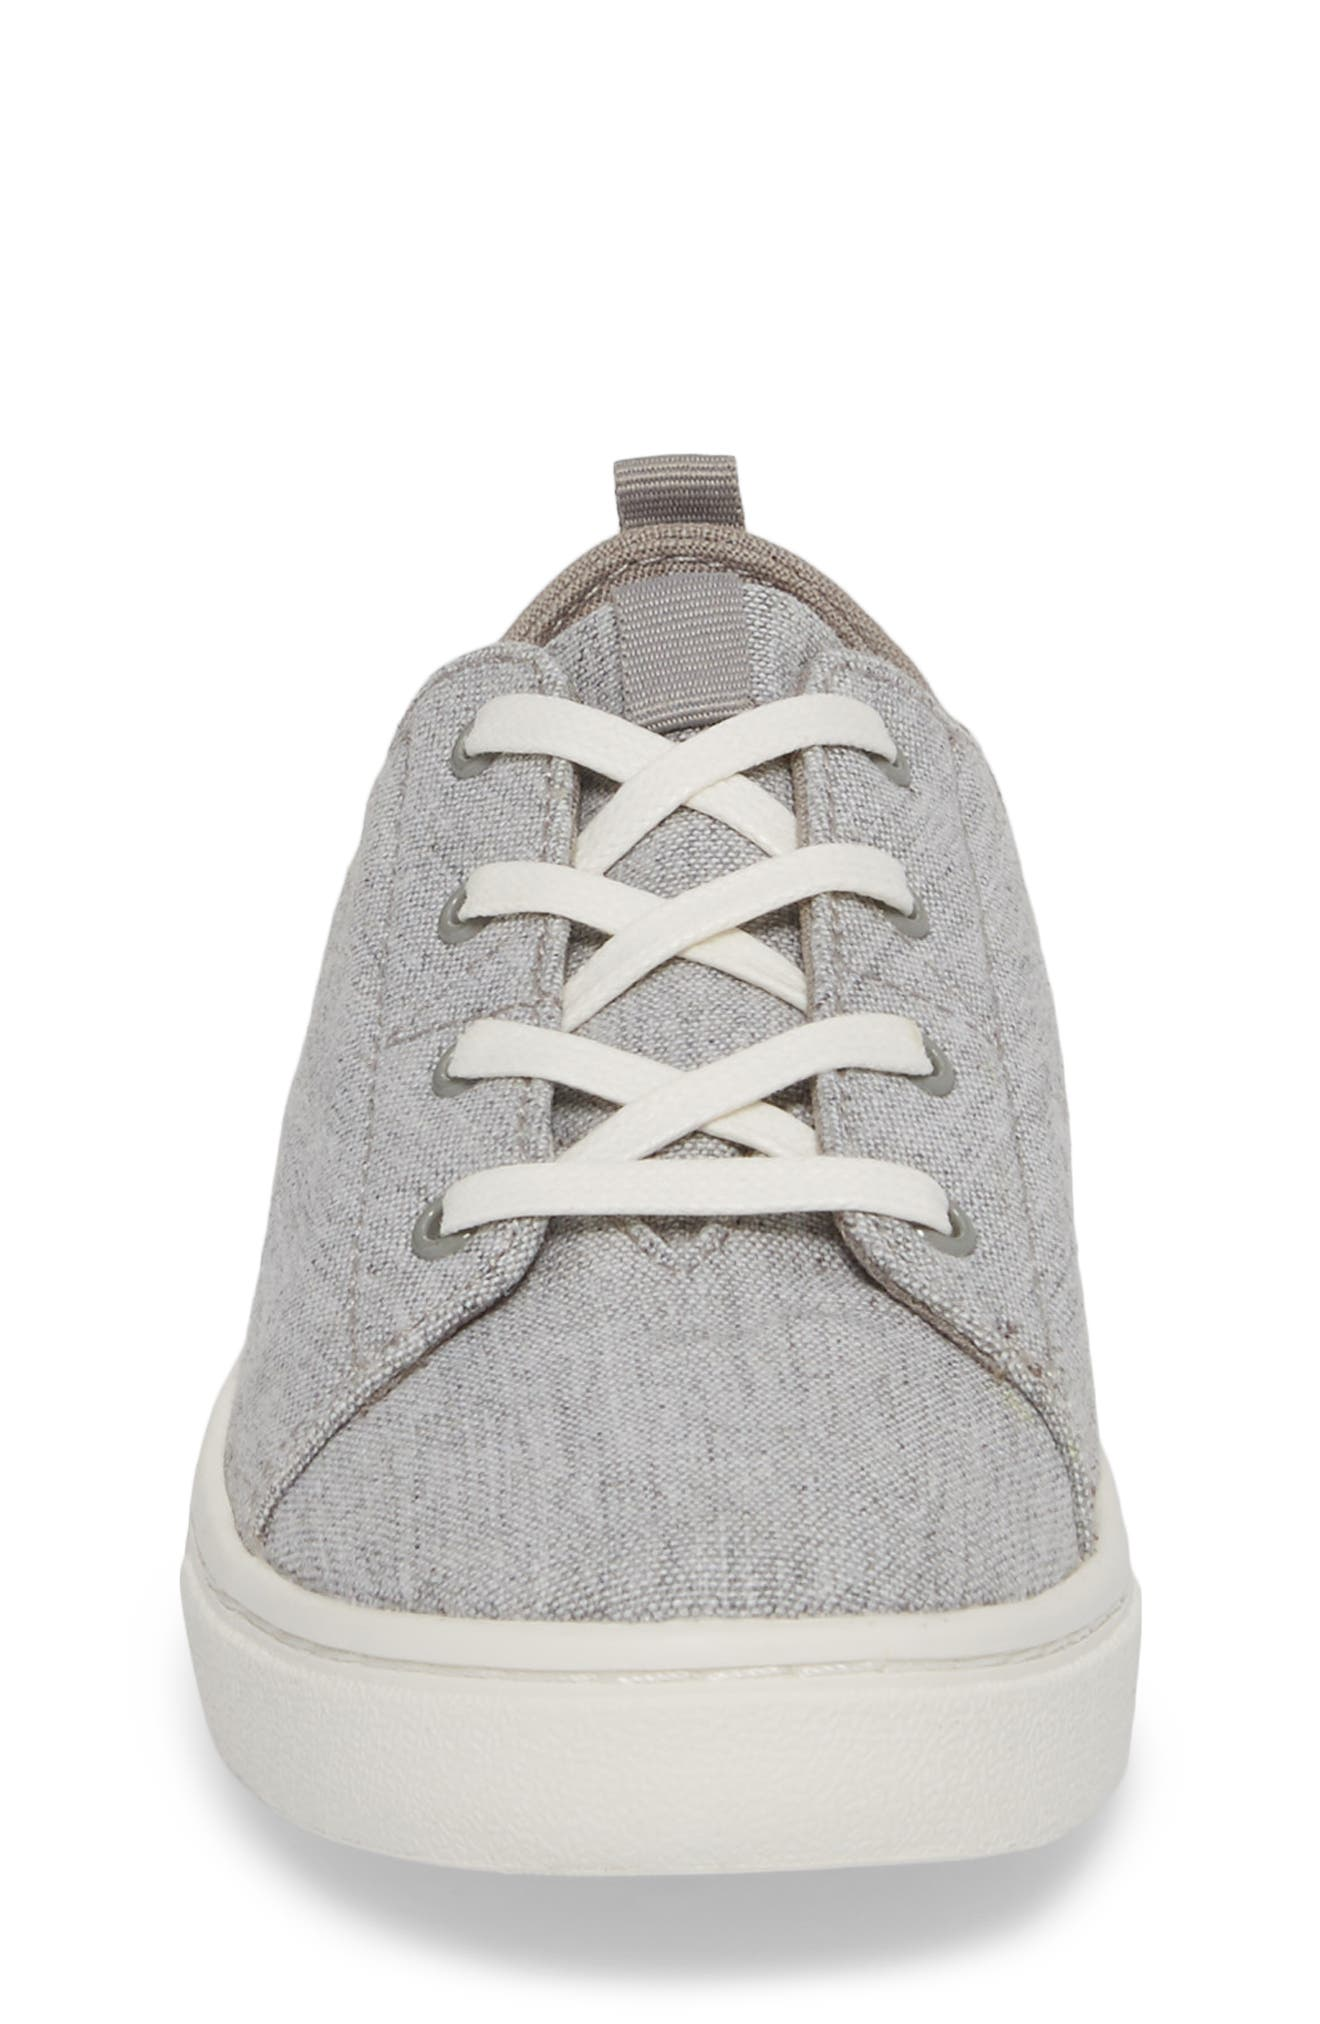 Lenny Sneaker,                             Alternate thumbnail 4, color,                             DRIZZLE GREY SLUB CHAMBRAY